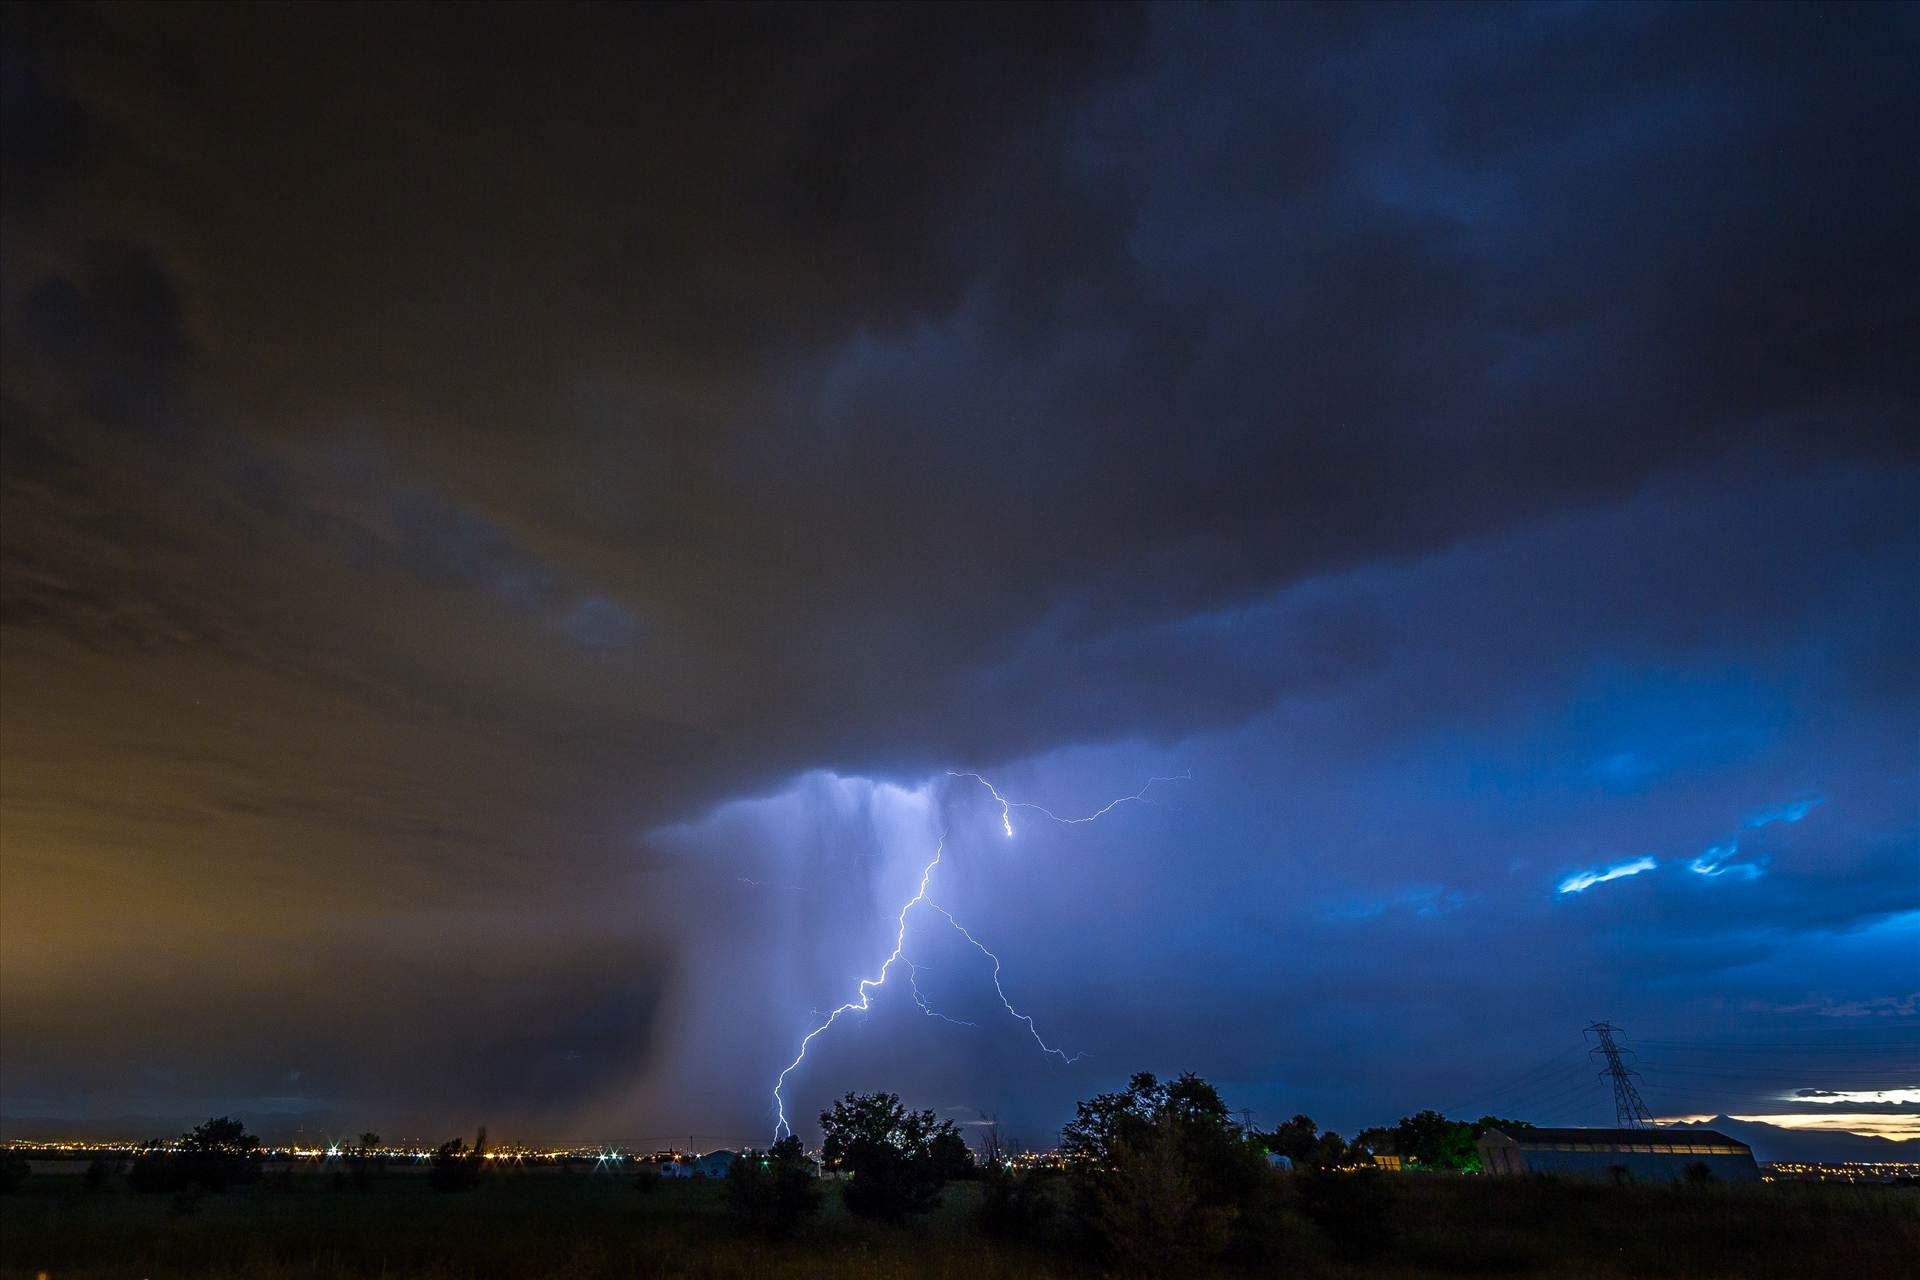 Lightning Flashes 8 - A series of shots from the end of the street, during a powerful lightning storm near Reunion, Colorado. by D Scott Smith